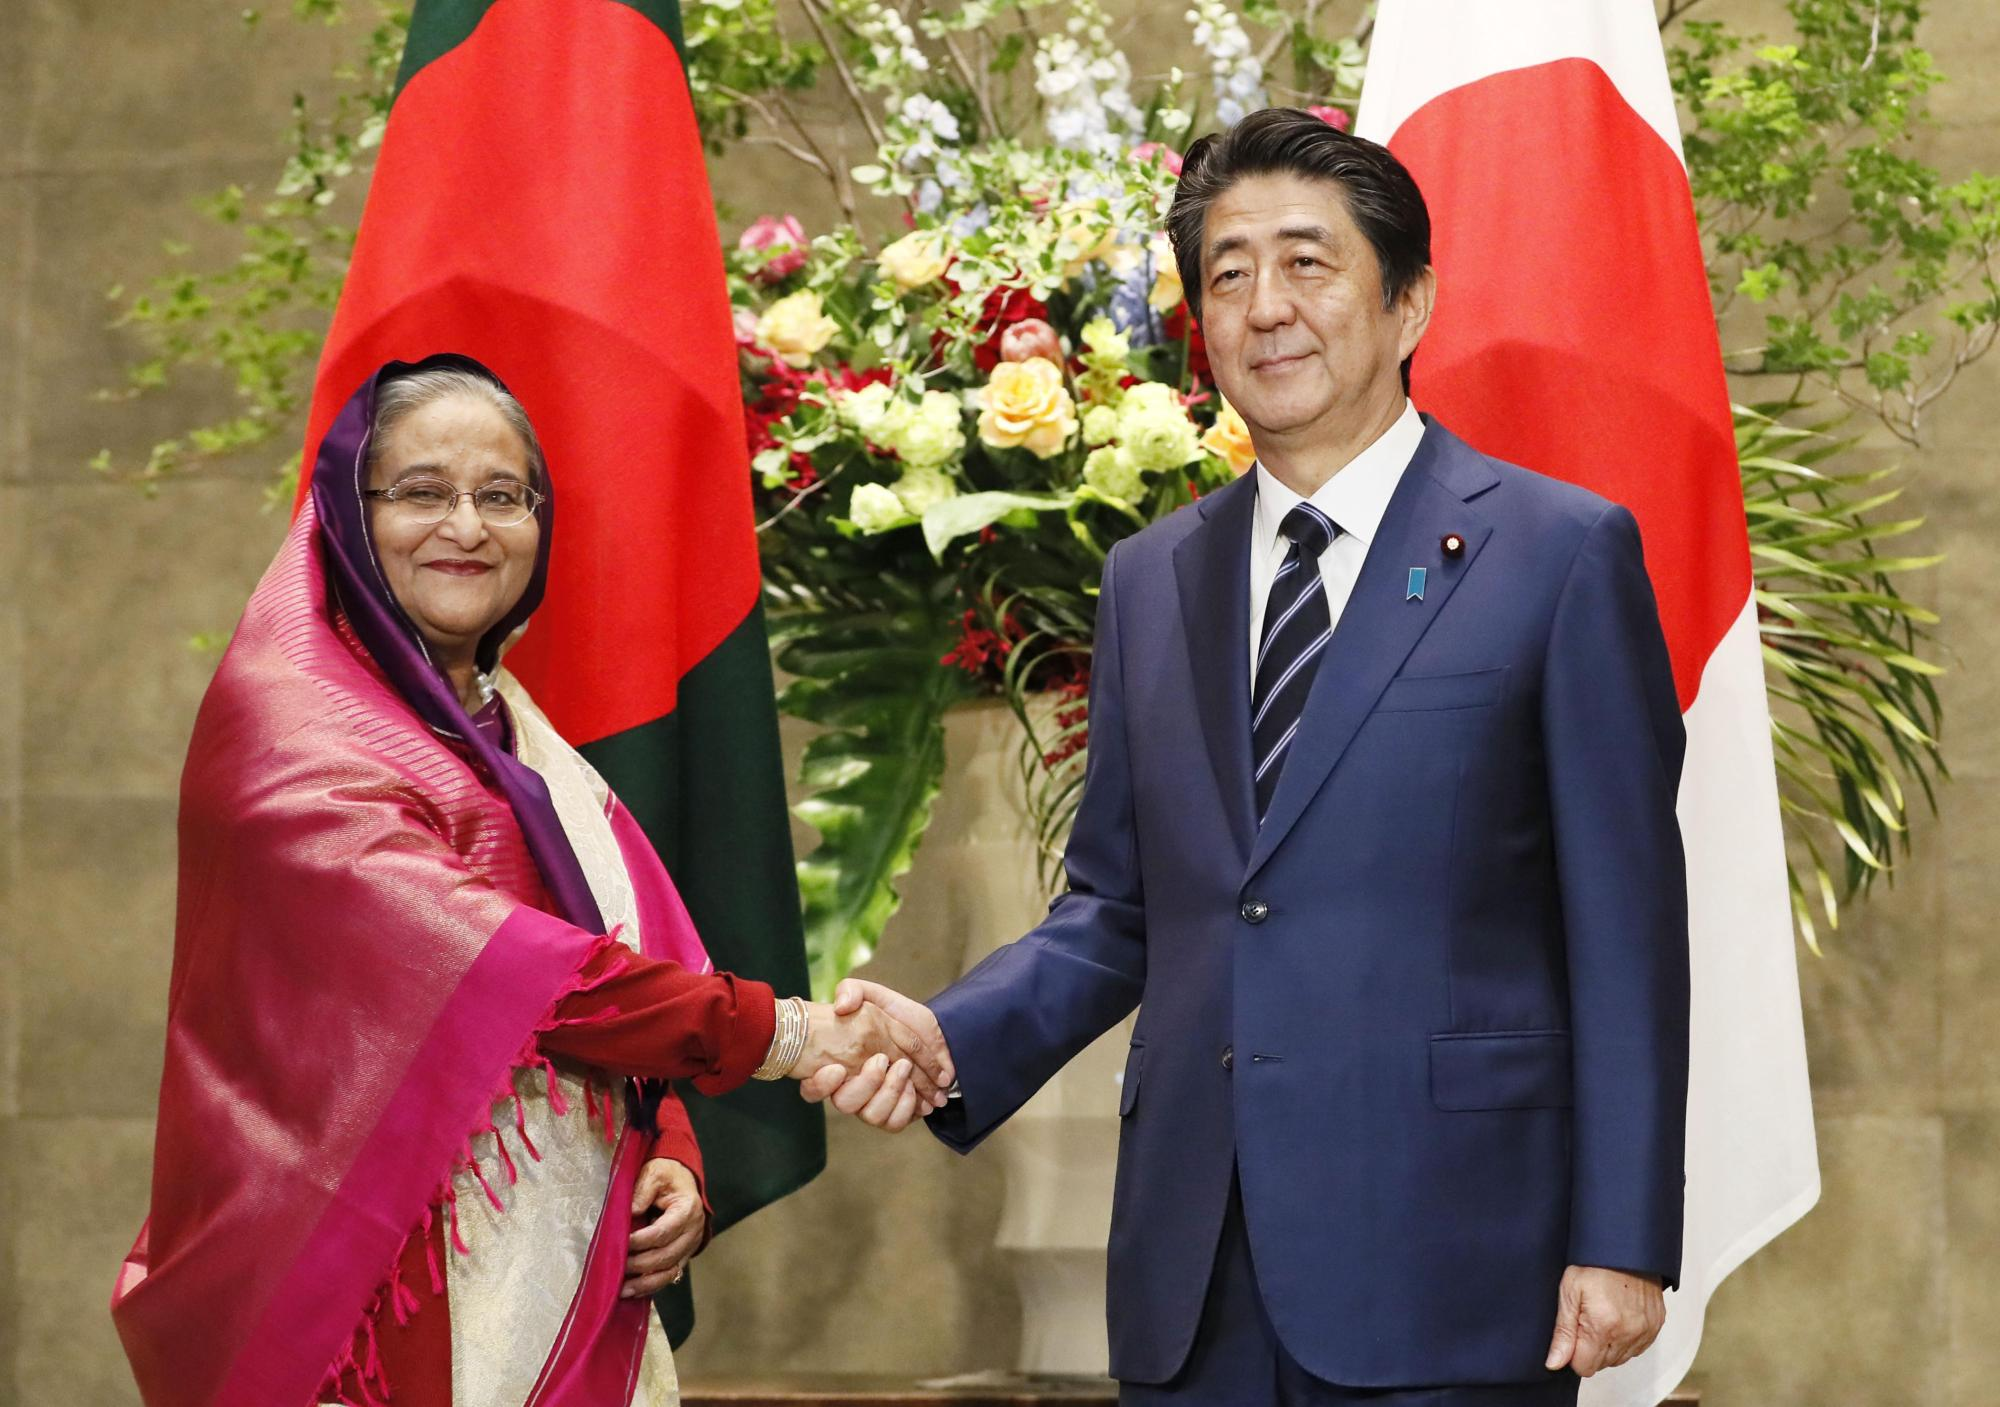 Prime Minister Shinzo Abe meets with his Bangladeshi counterpart, Sheikh Hasina, in Tokyo on Wednesday. | KYODO